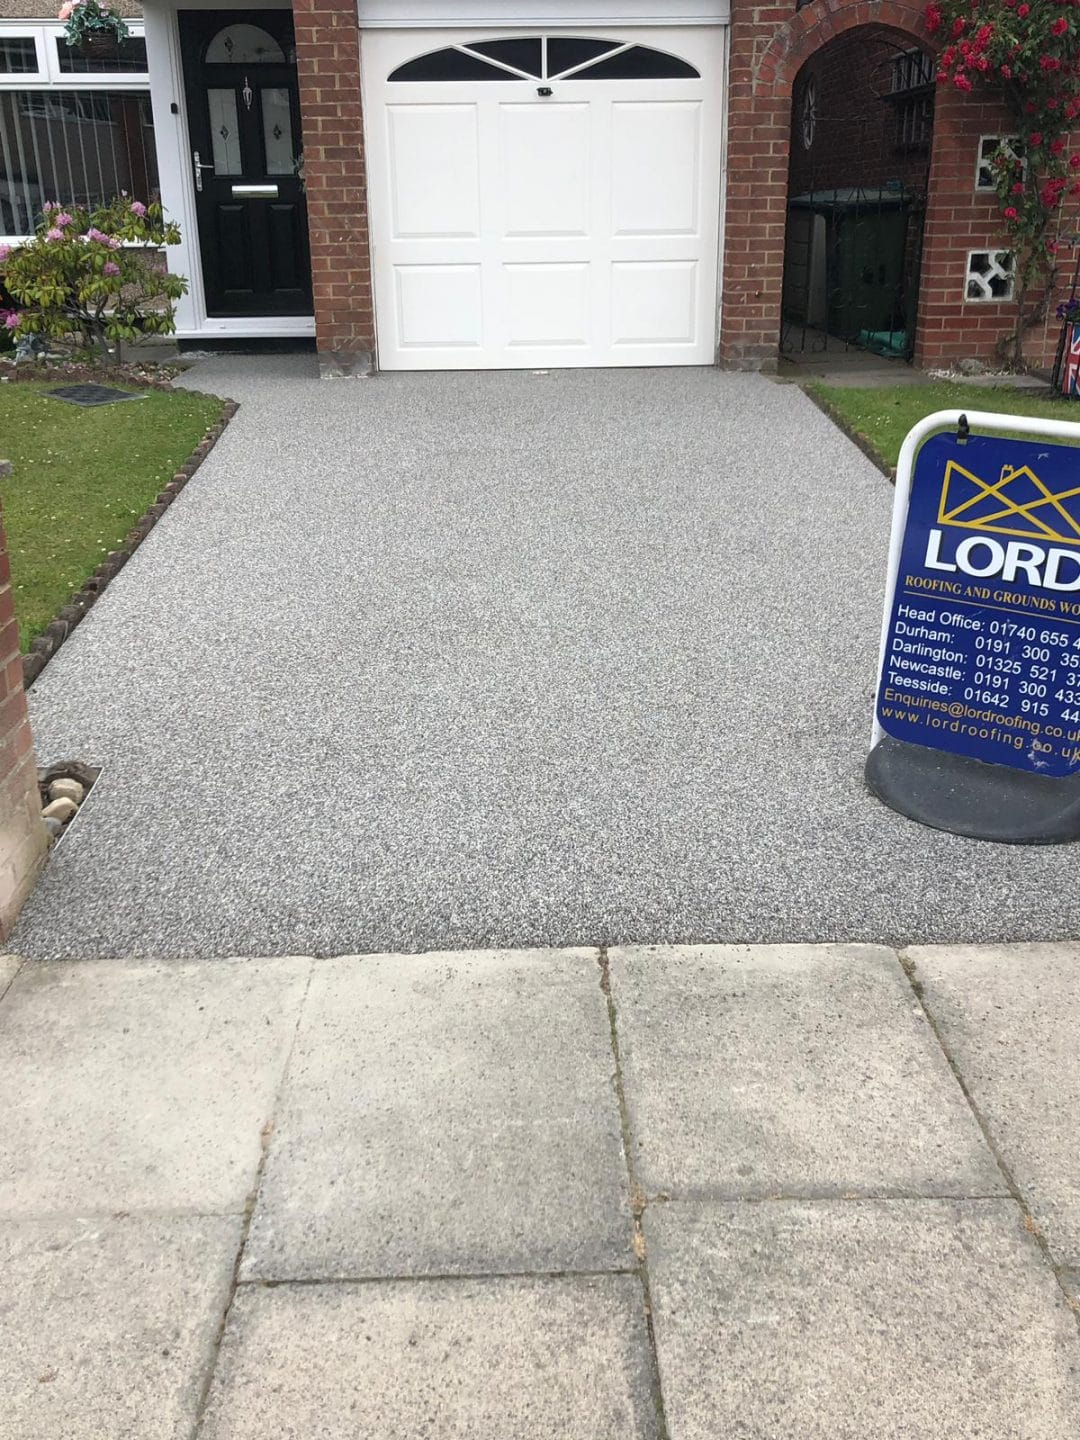 Thornaby Titanium Resin Bound Driveway Lord Roofing